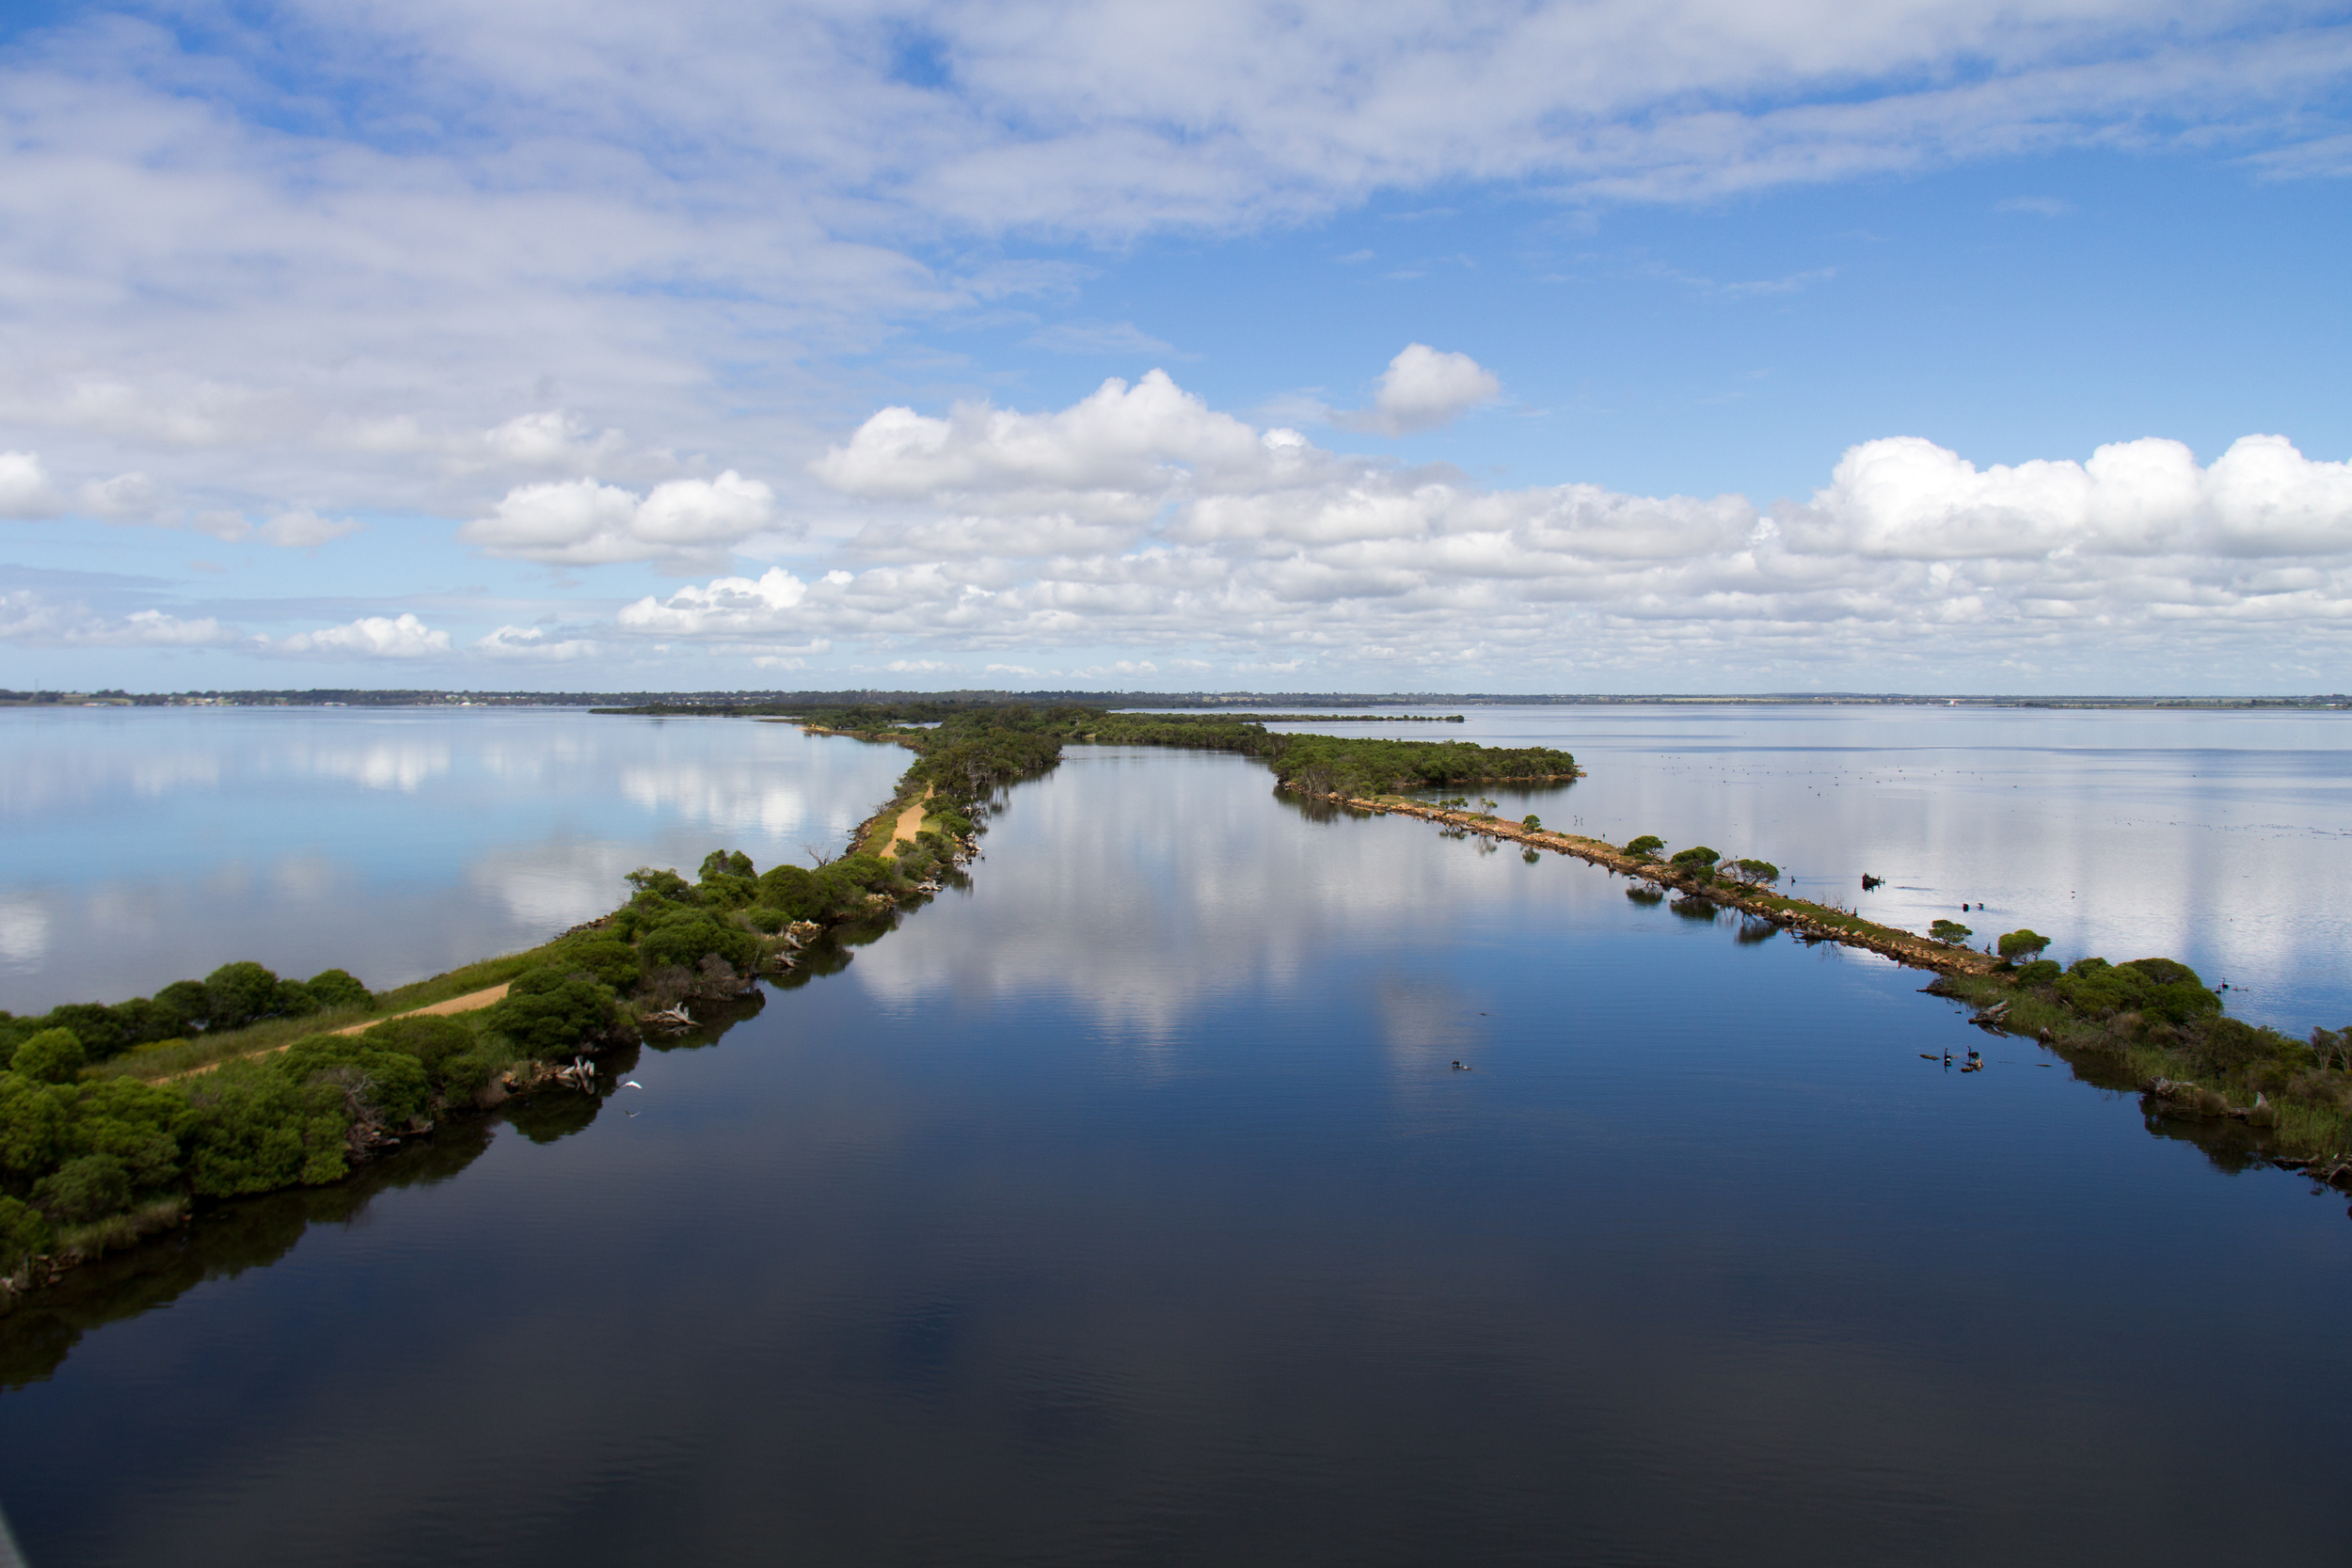 The Mitchell River running into Lake King has formed silt jetties over hundreds of years which make for a fantastic view.